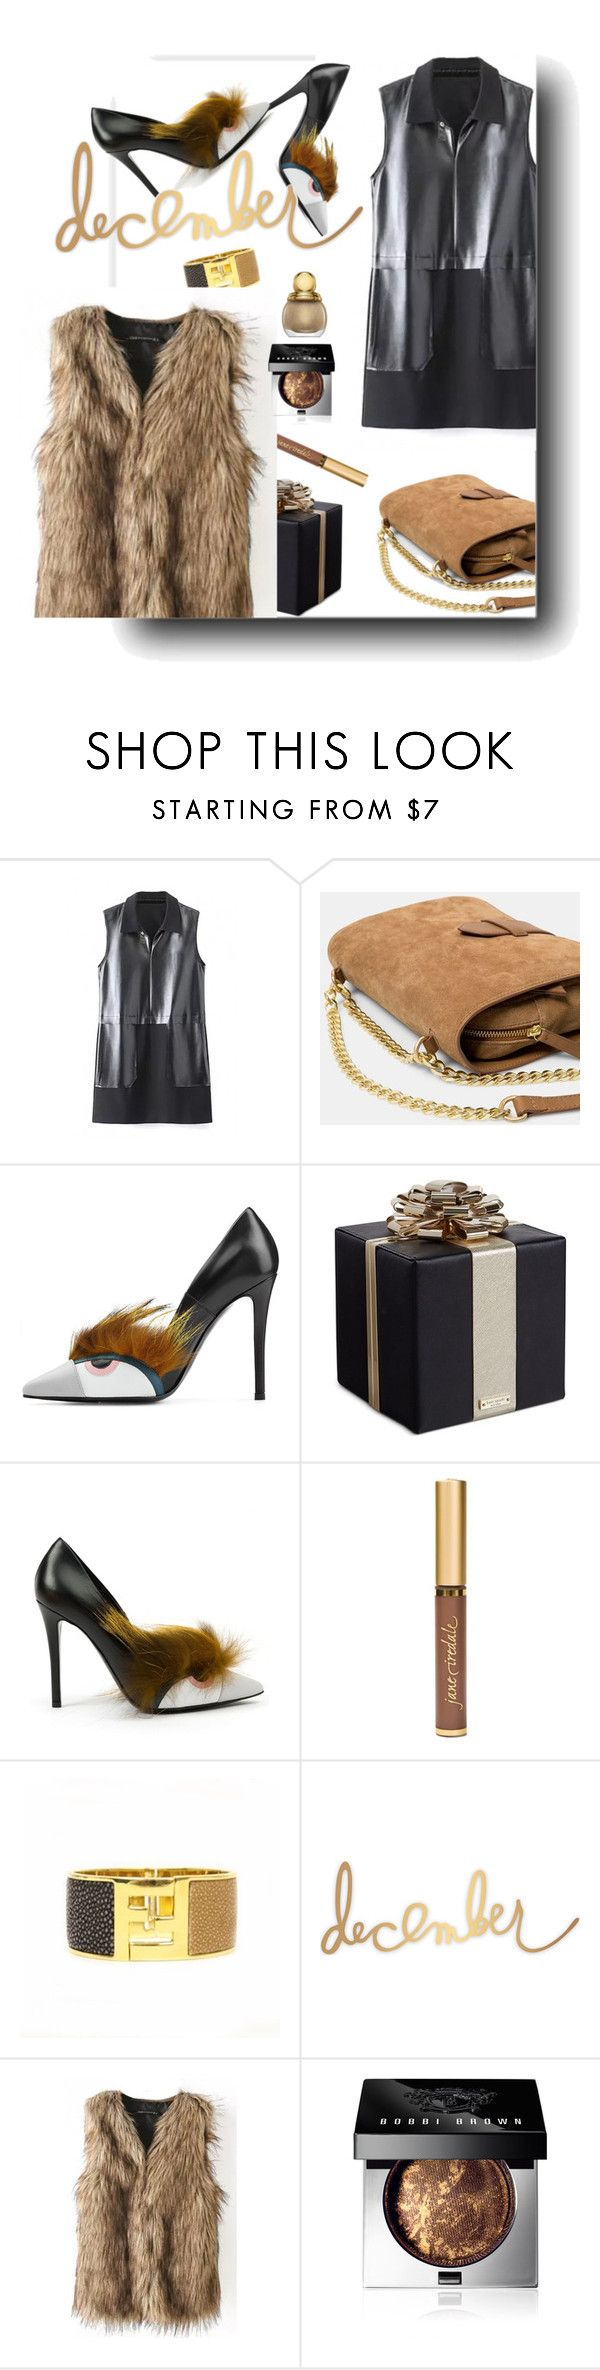 """Bhalo"" by iraavalon ❤ liked on Polyvore featuring MANGO, Fendi, Kate Spade, Jane Iredale, Bobbi Brown Cosmetics, women's clothing, women's fashion, women, female and woman"